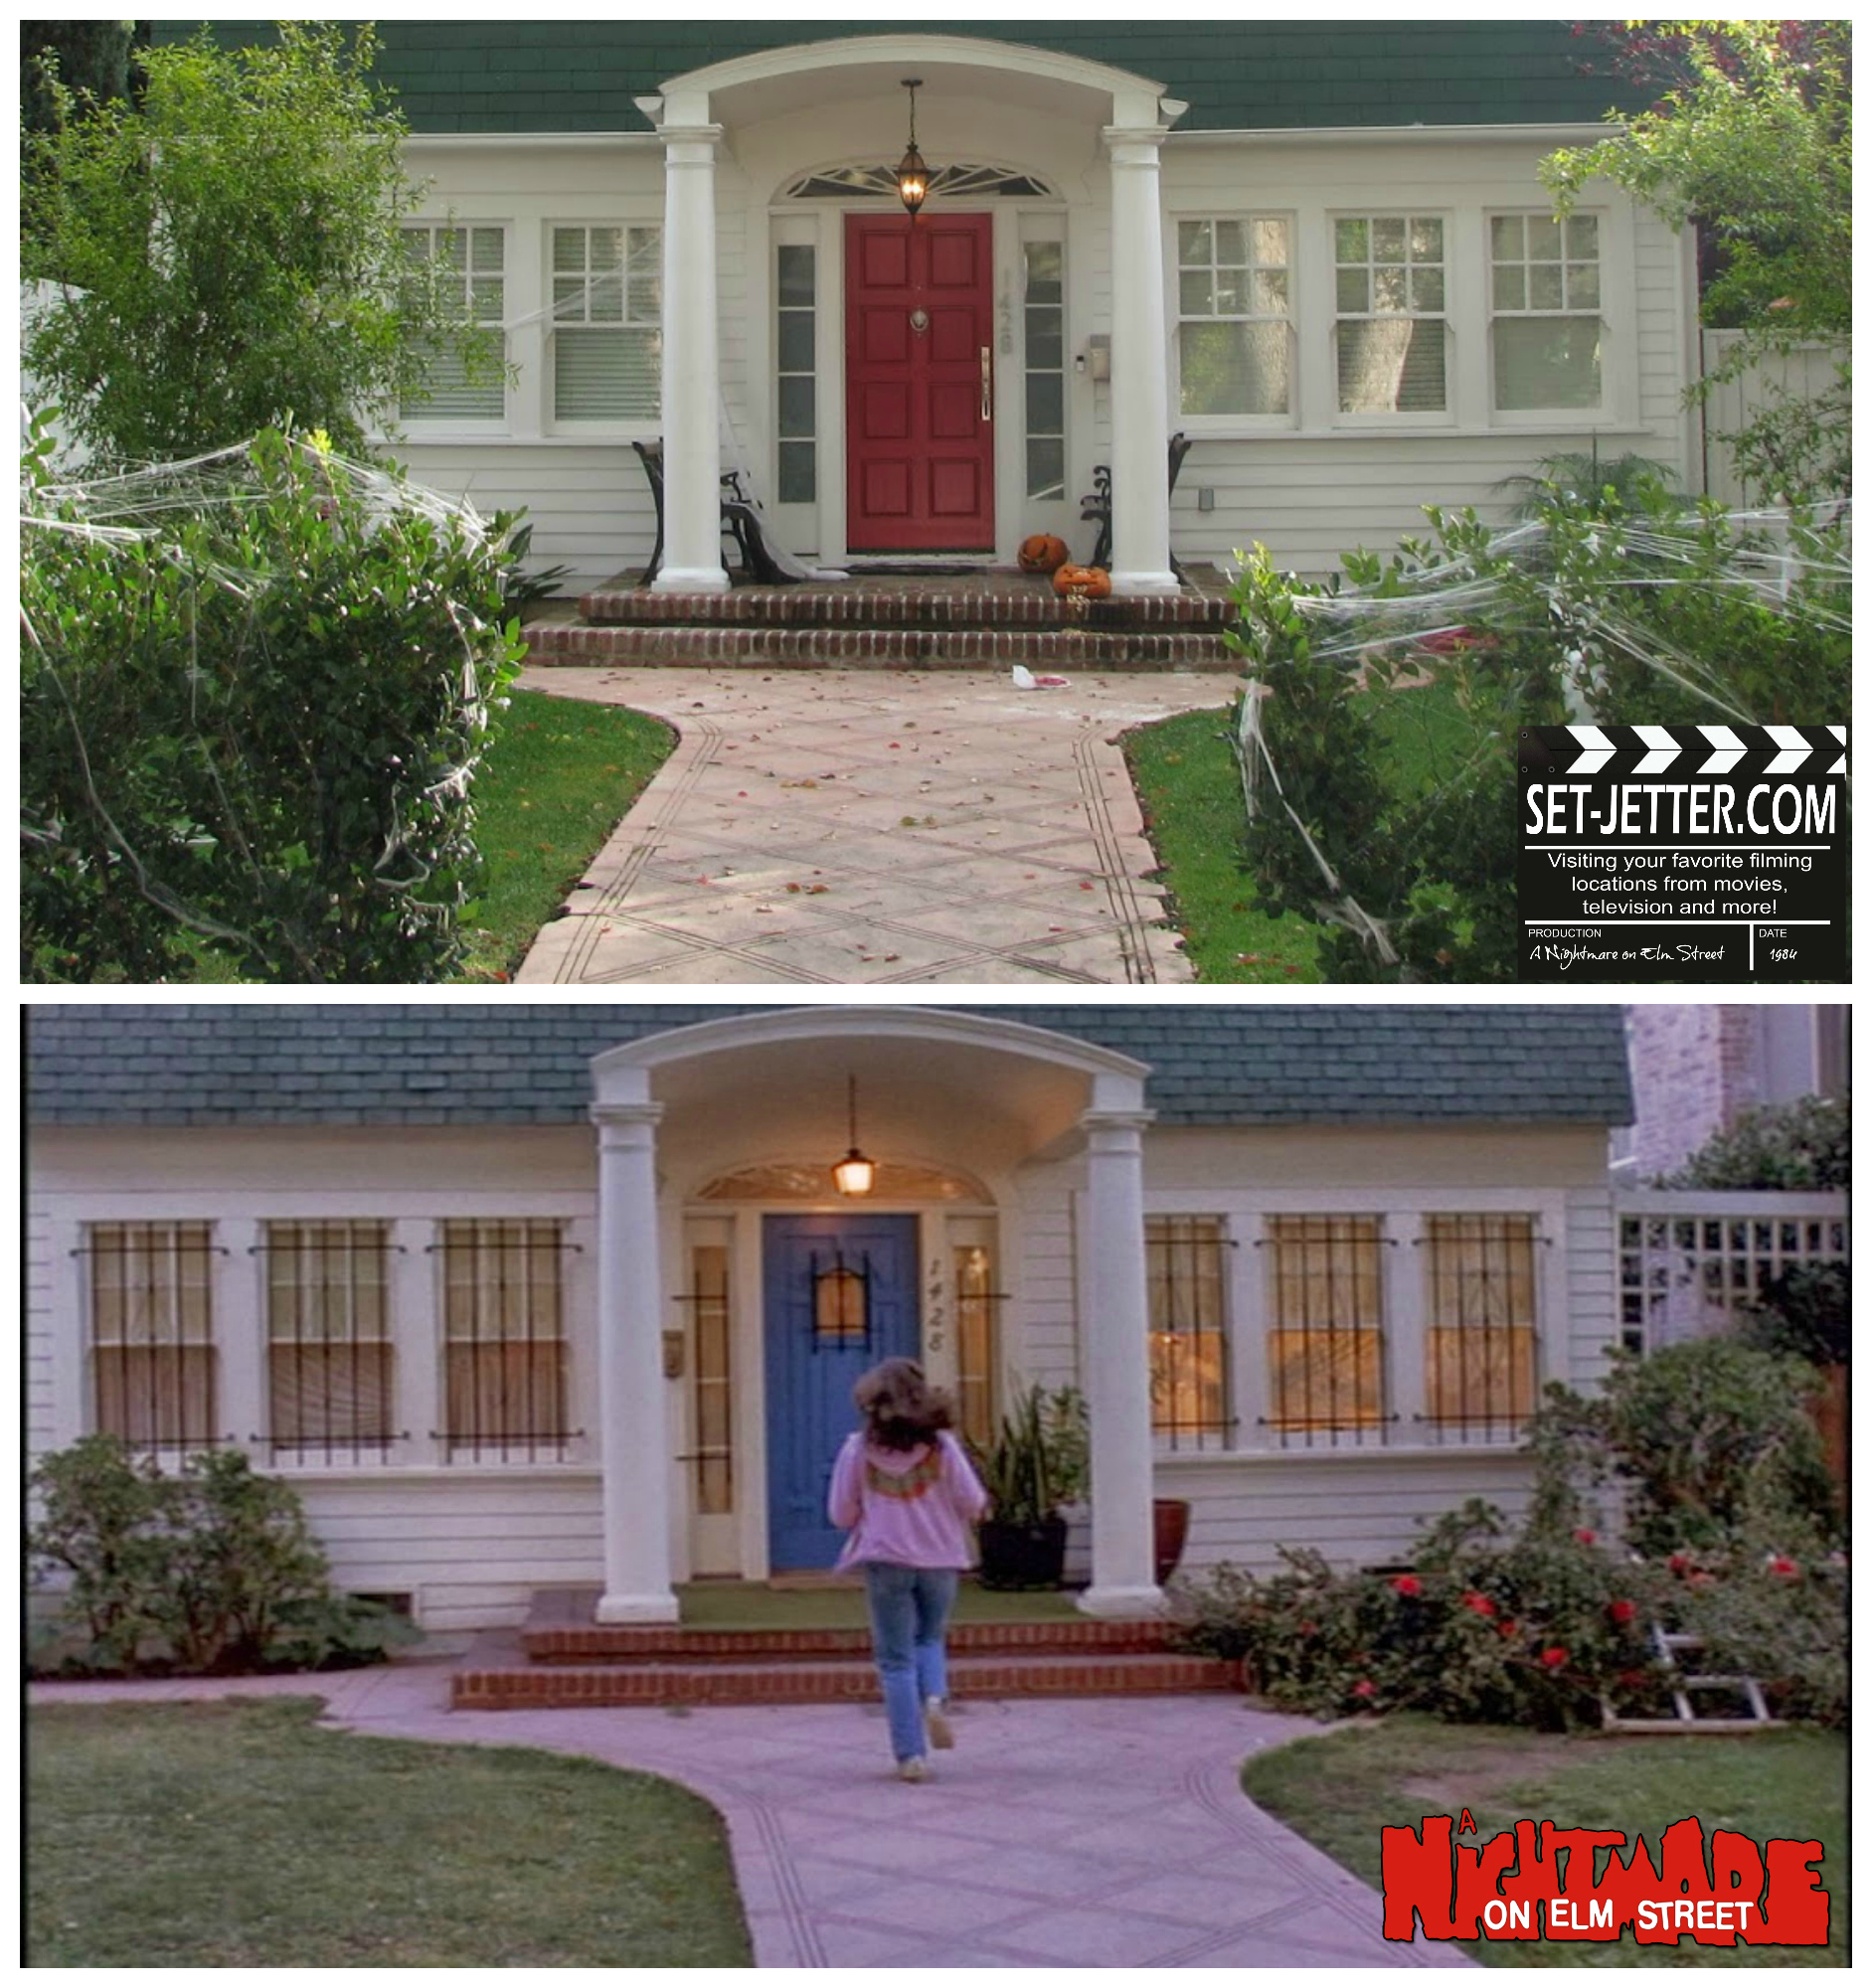 Nightmare on Elm Street comparison 33.jpg